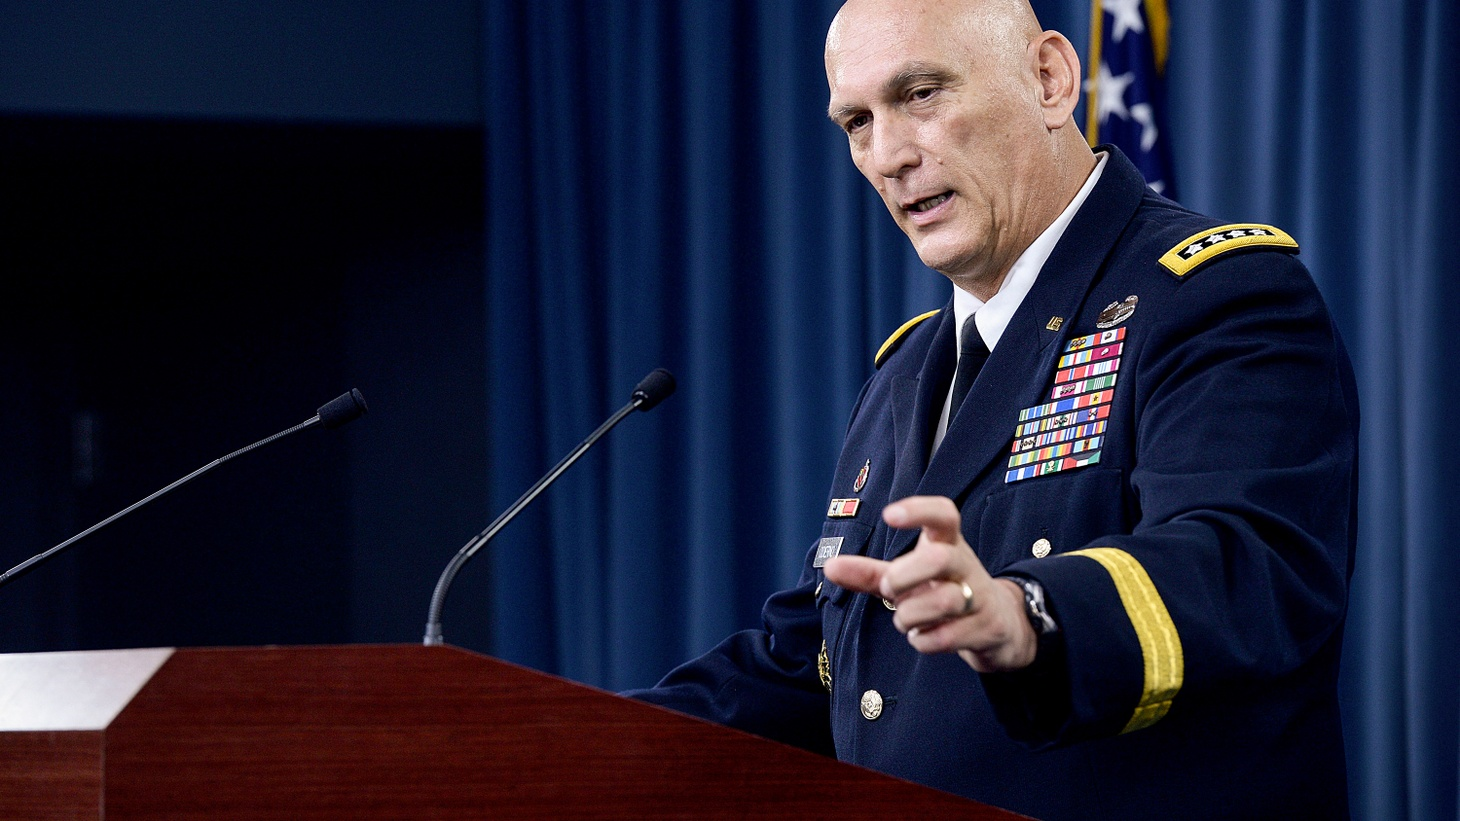 """The US and Russia have not gone back to the Cold War yet. But, after years of fighting in the Middle East, America's military establishment is gearing up to counter a greater threat to American security: """"hybrid warfare"""" used by Vladimir Putin in Eastern Ukraine."""